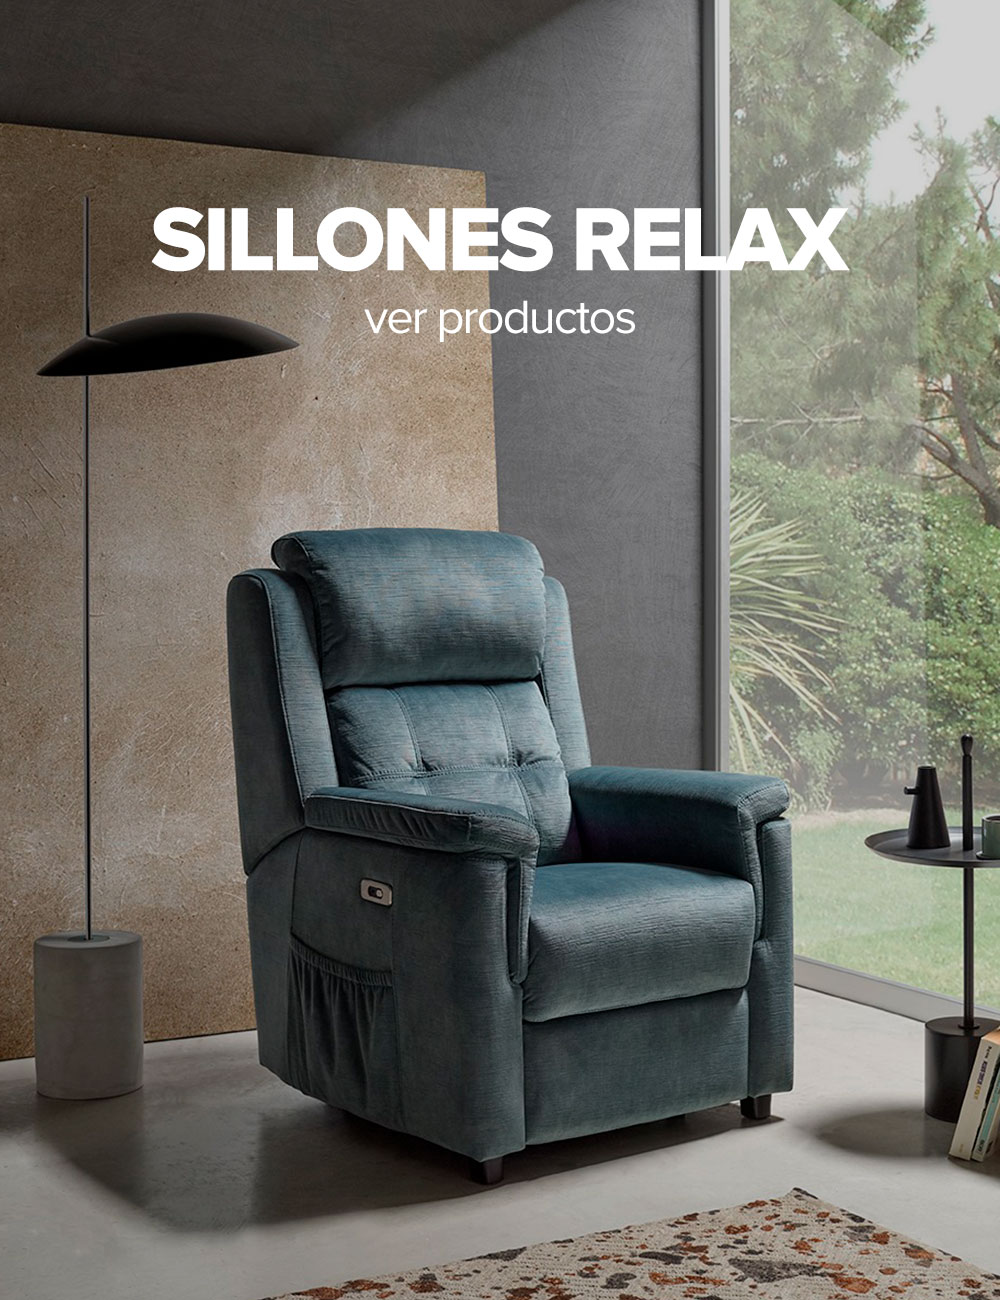 sillones relax online